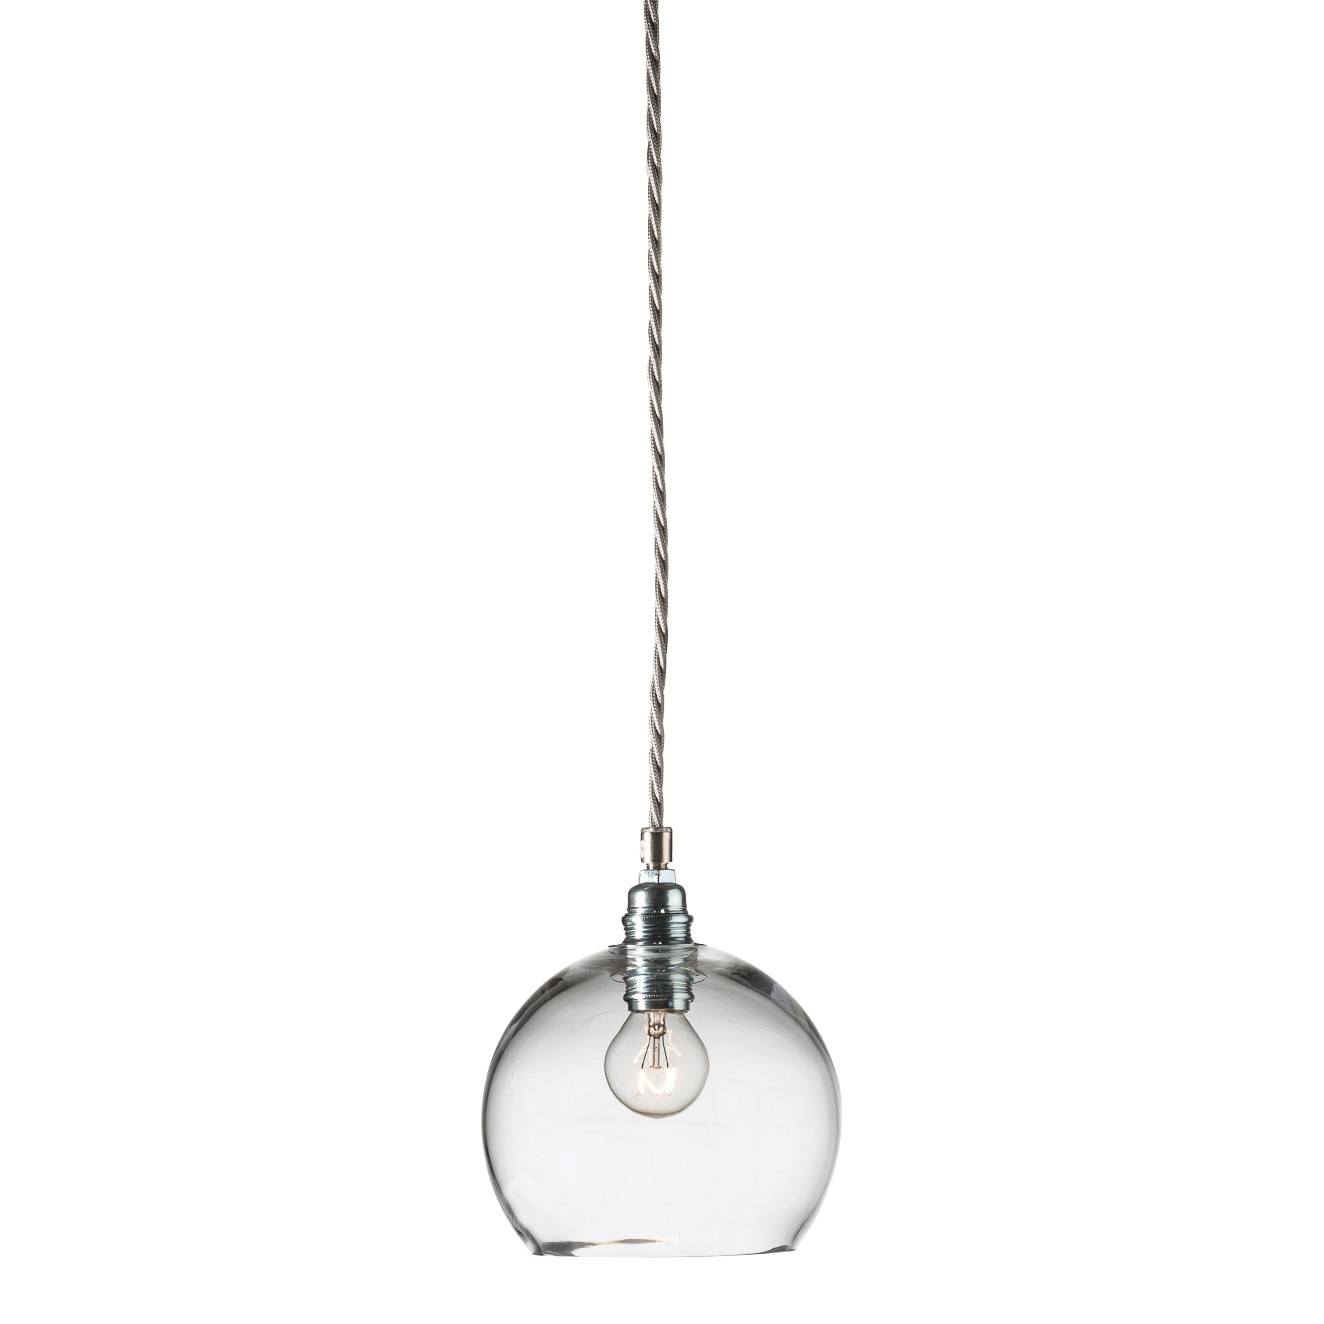 orb-glass-pendant-15-cm-grey-silver-wire